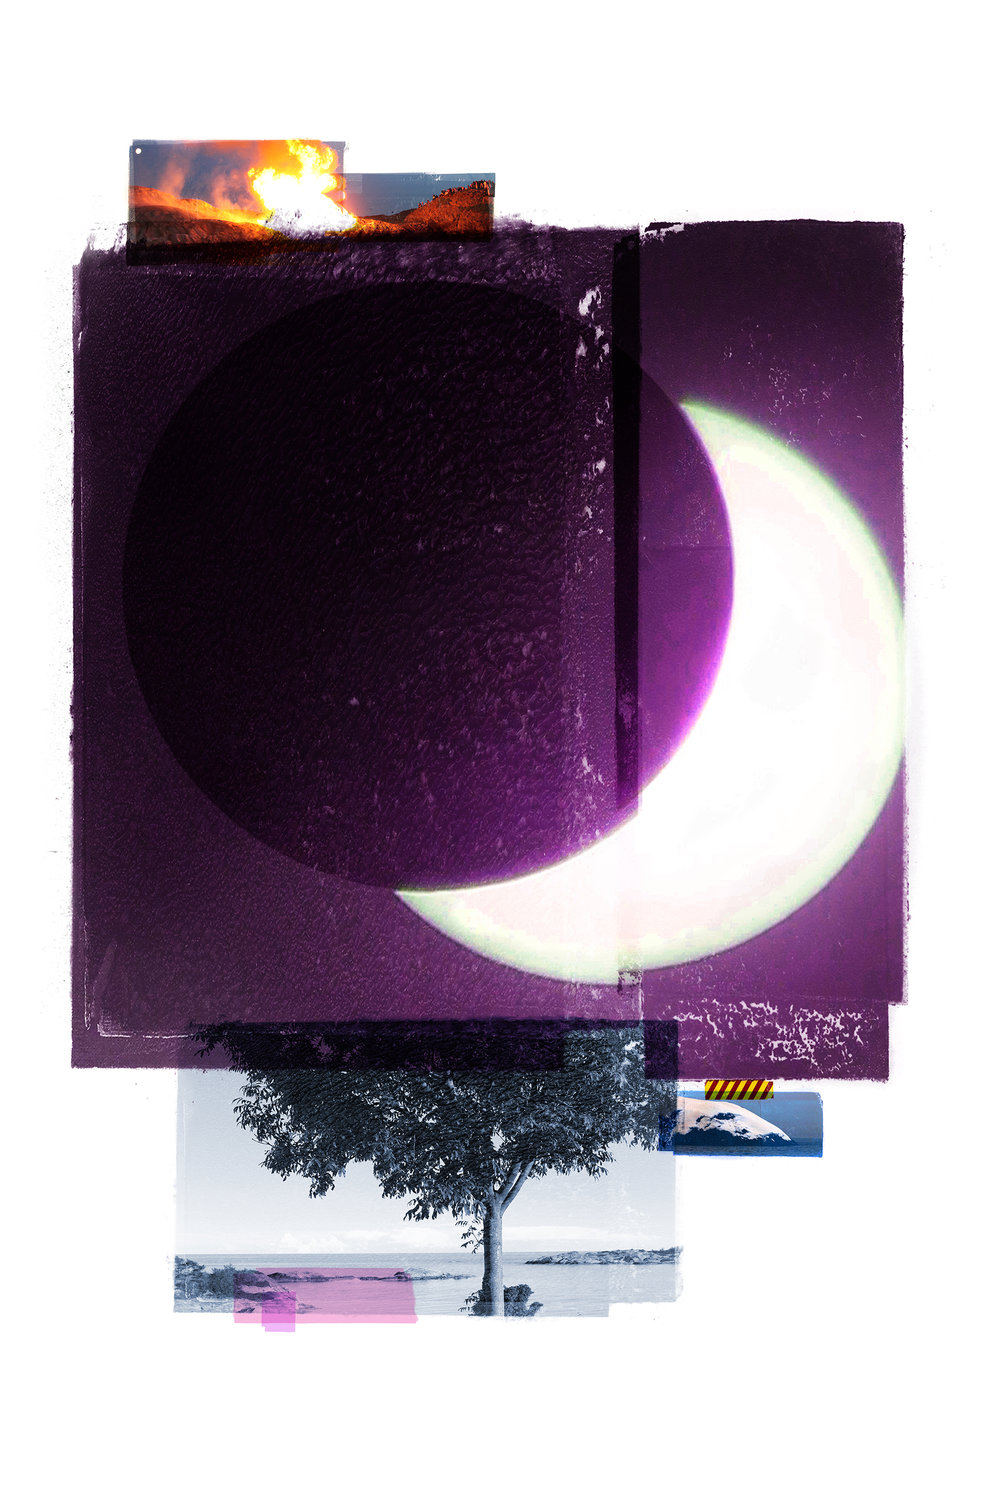 Solar / Blue Aspen (Eclipse)  Original Archival UV Pigment Print / BFK Rives 300 gr 120 x 80 cm / 47 x 32 in Edition of 50 + 5 Ap Editeur: Per Fronth Studios / Printer Henrik Aunevik  02/2016: